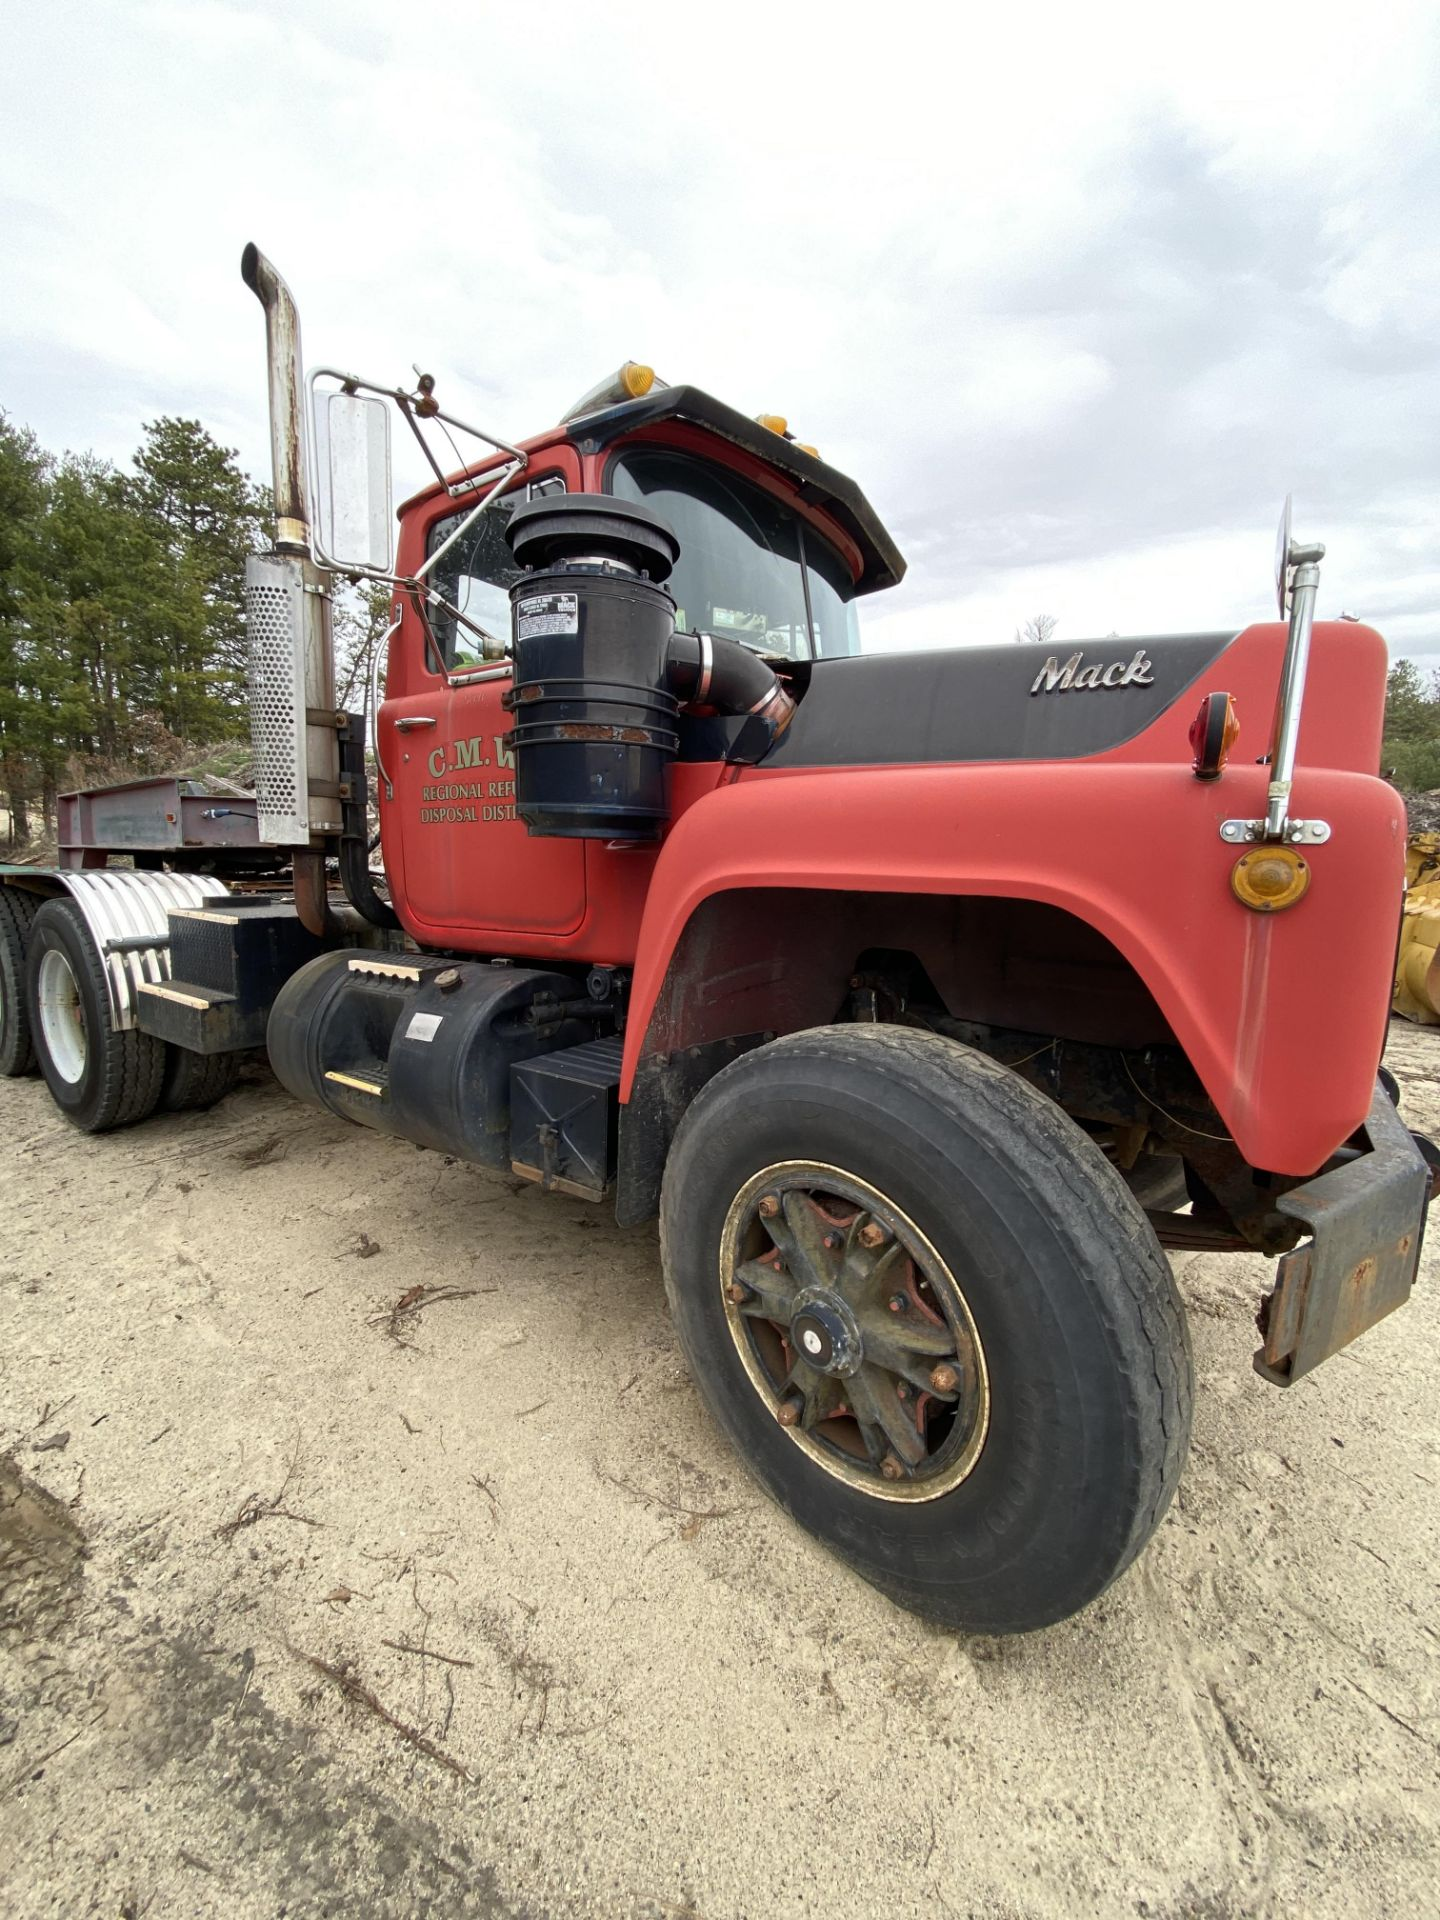 1986 Mack RD688SX Tandem Axle Tractor VIN 1M2P143Y8GA004351, Meter Reads 301,625 Miles, Day Cab, - Image 12 of 22